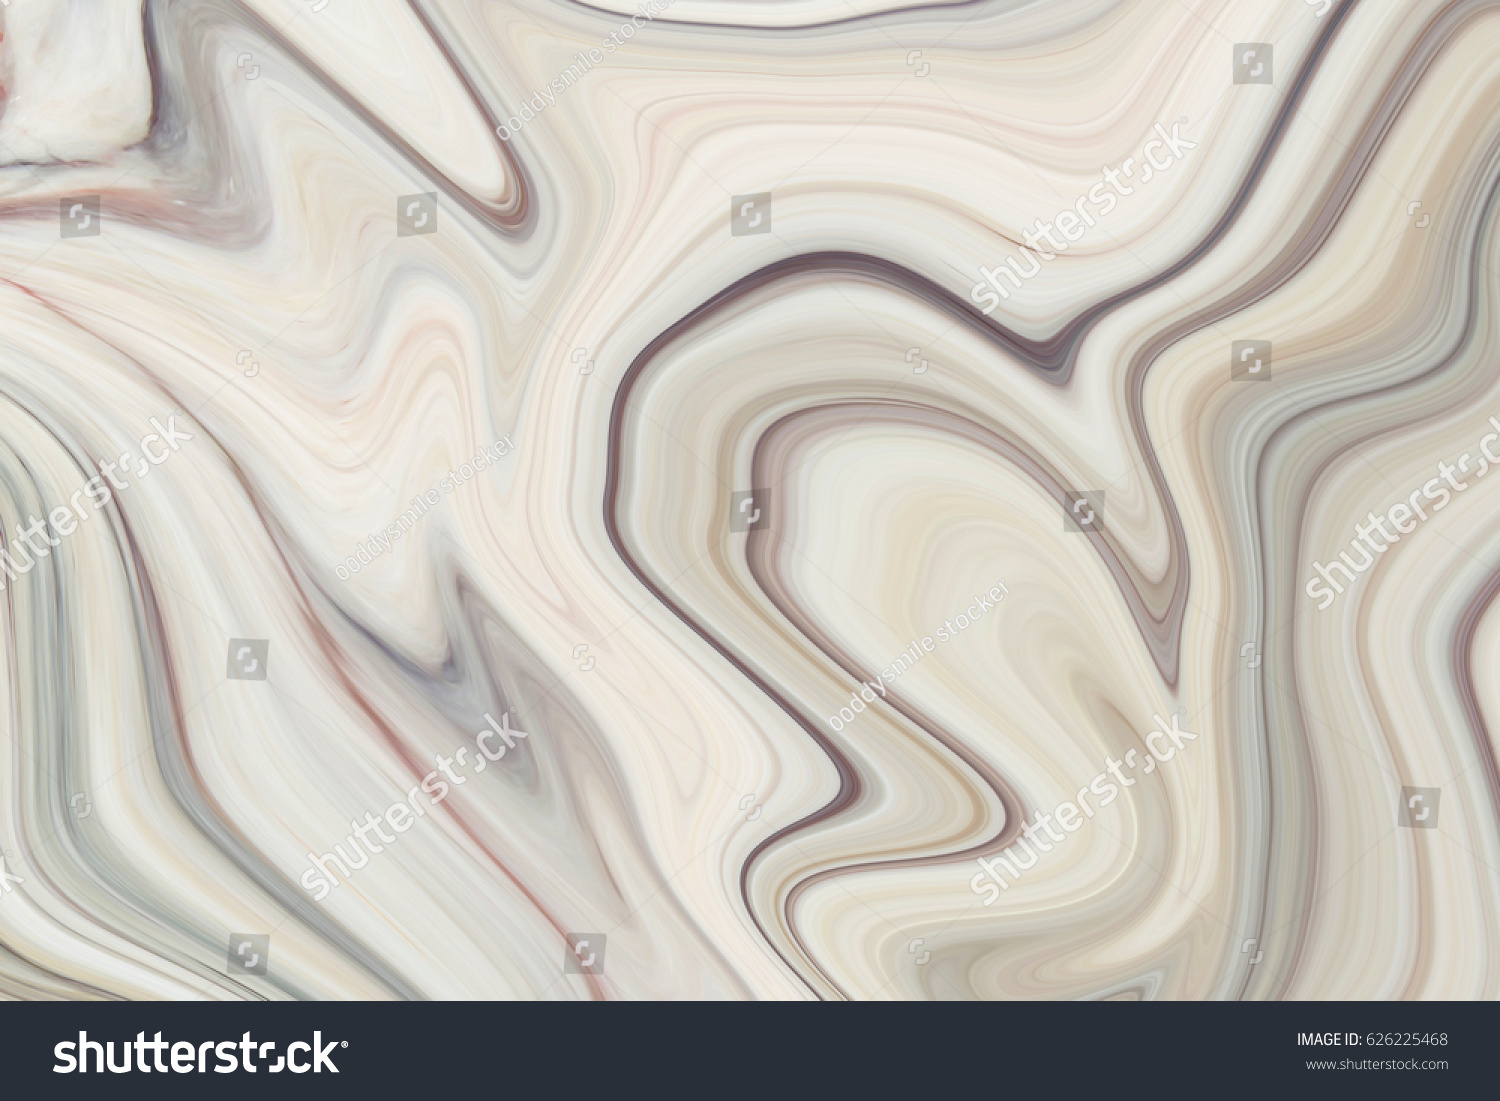 Must see Wallpaper Marble Swirl - stock-photo-marble-texture-background-brown-marble-pattern-texture-abstract-background-can-be-used-for-626225468  Collection_894020.jpg